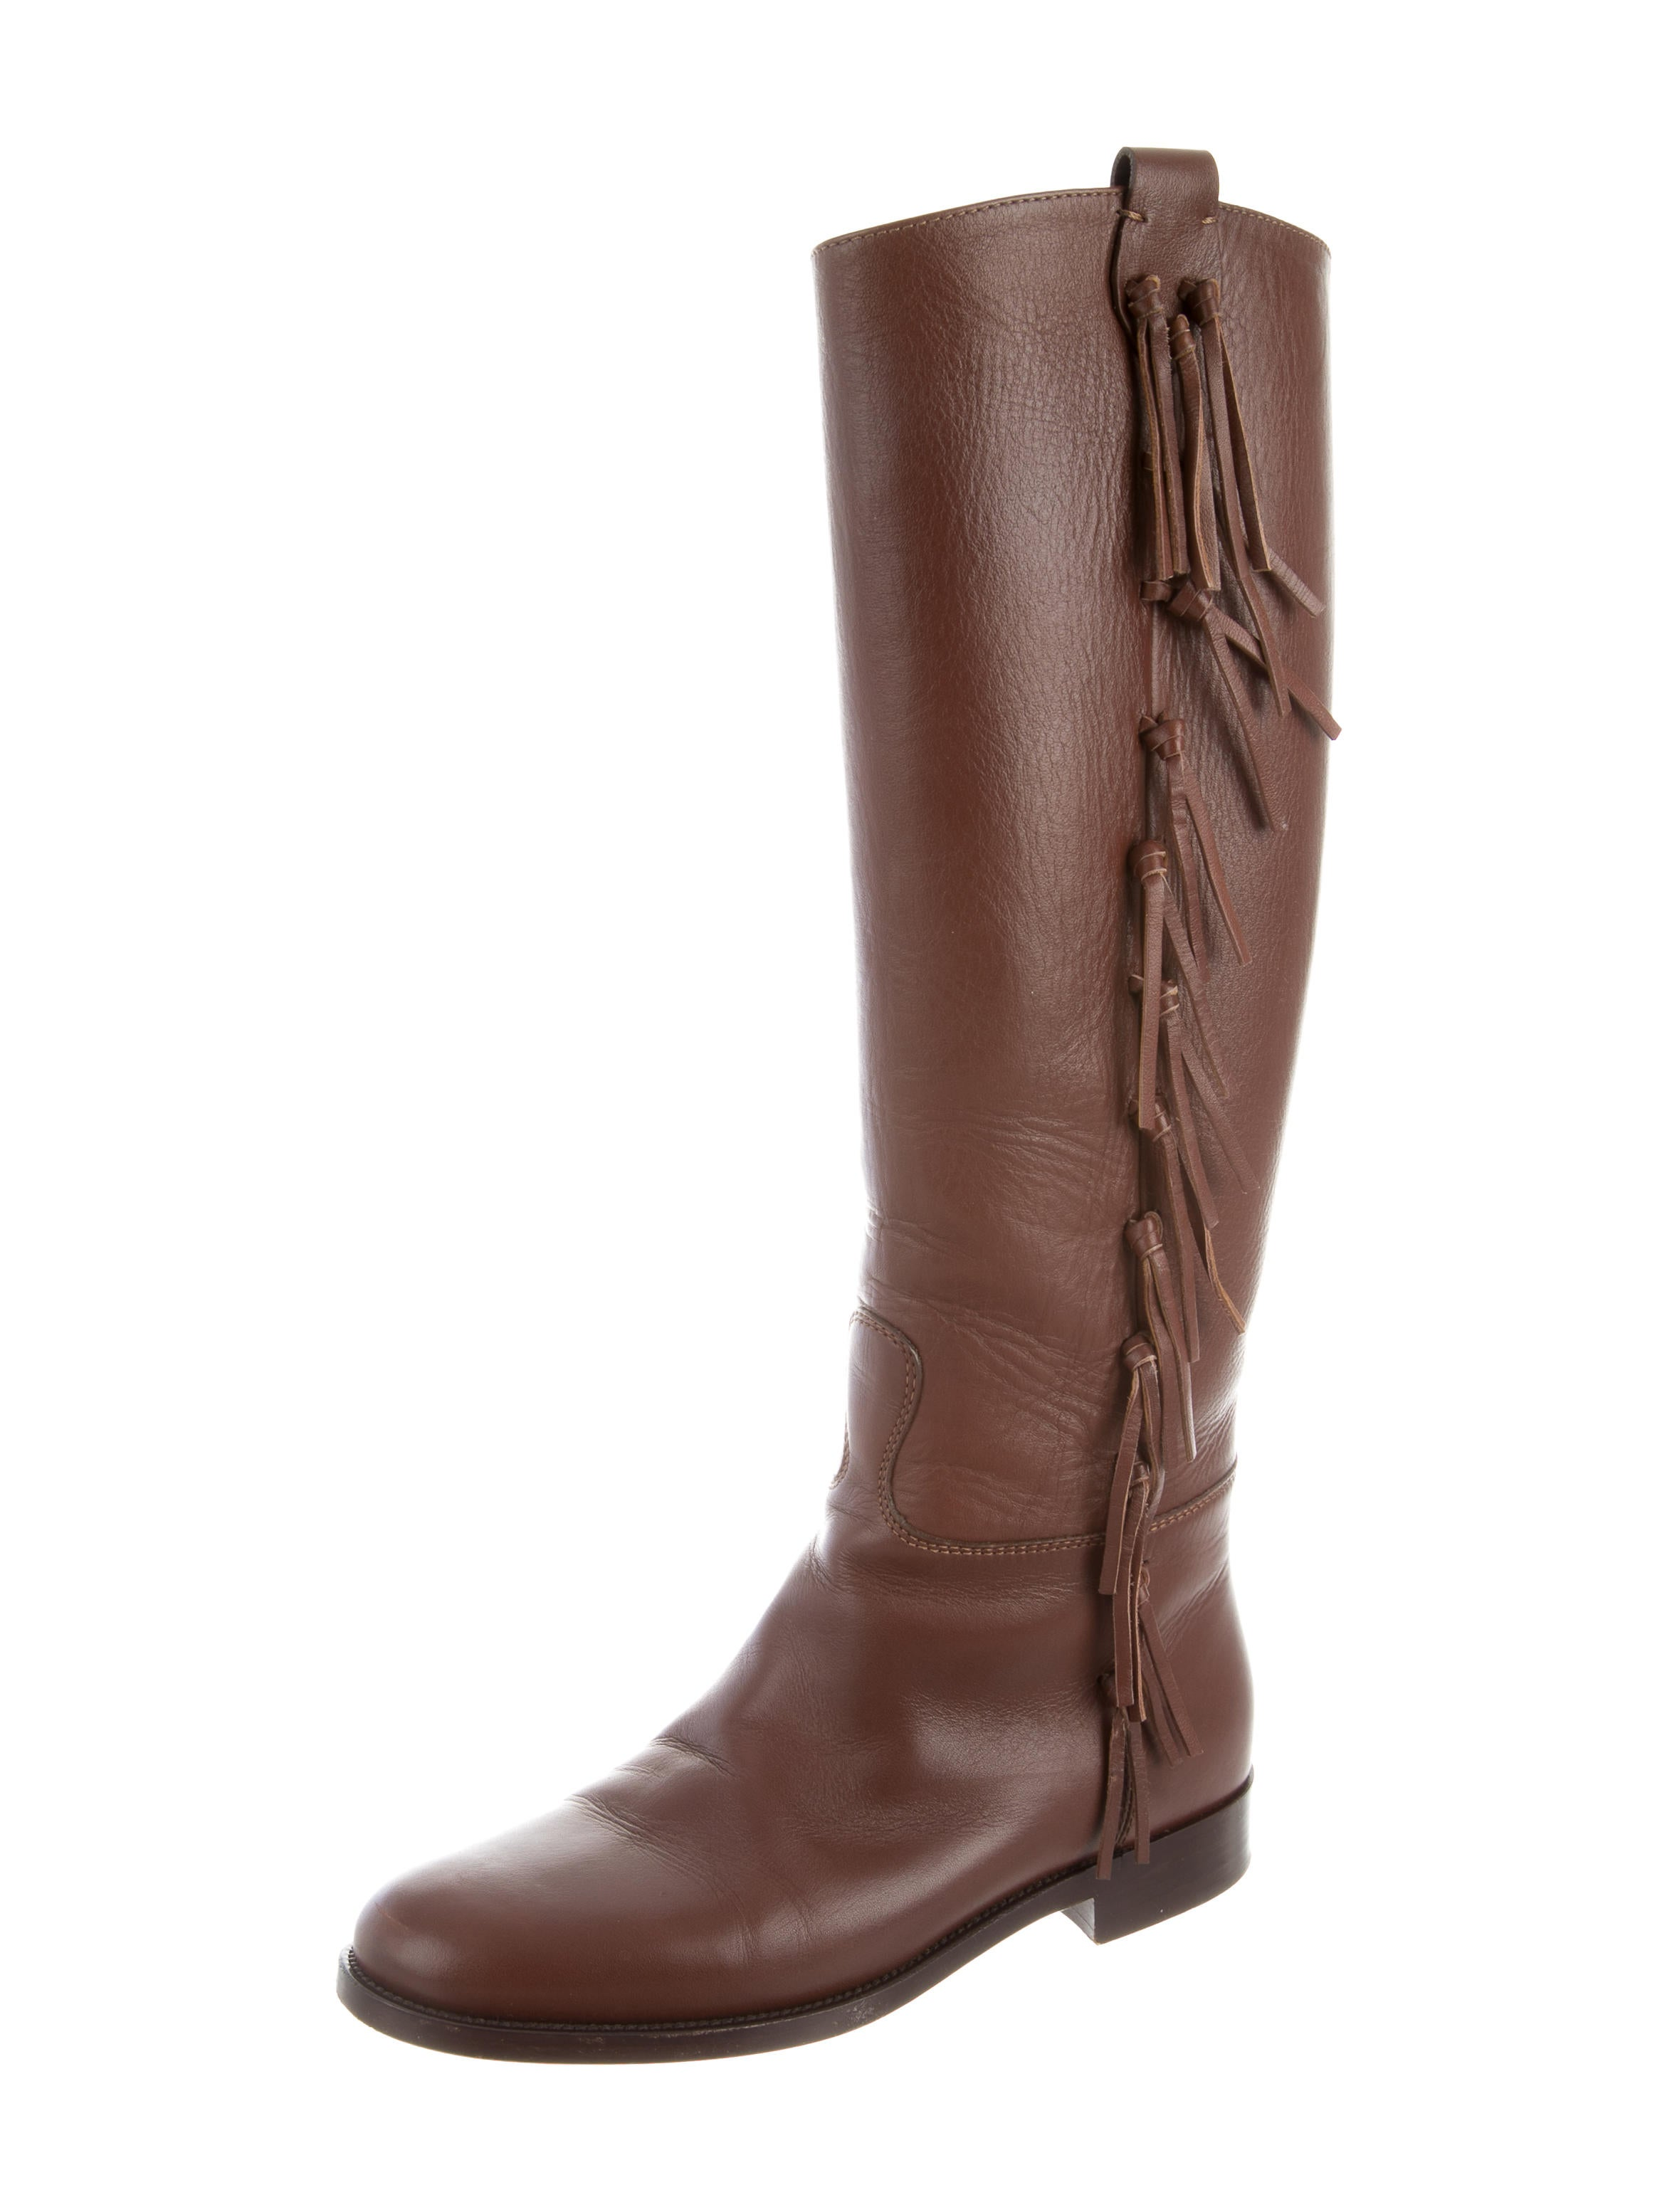 outlet 2015 buy cheap good selling Valentino Harry Fringe Boots outlet largest supplier cheap price fake outlet get to buy HvrO8AKhf